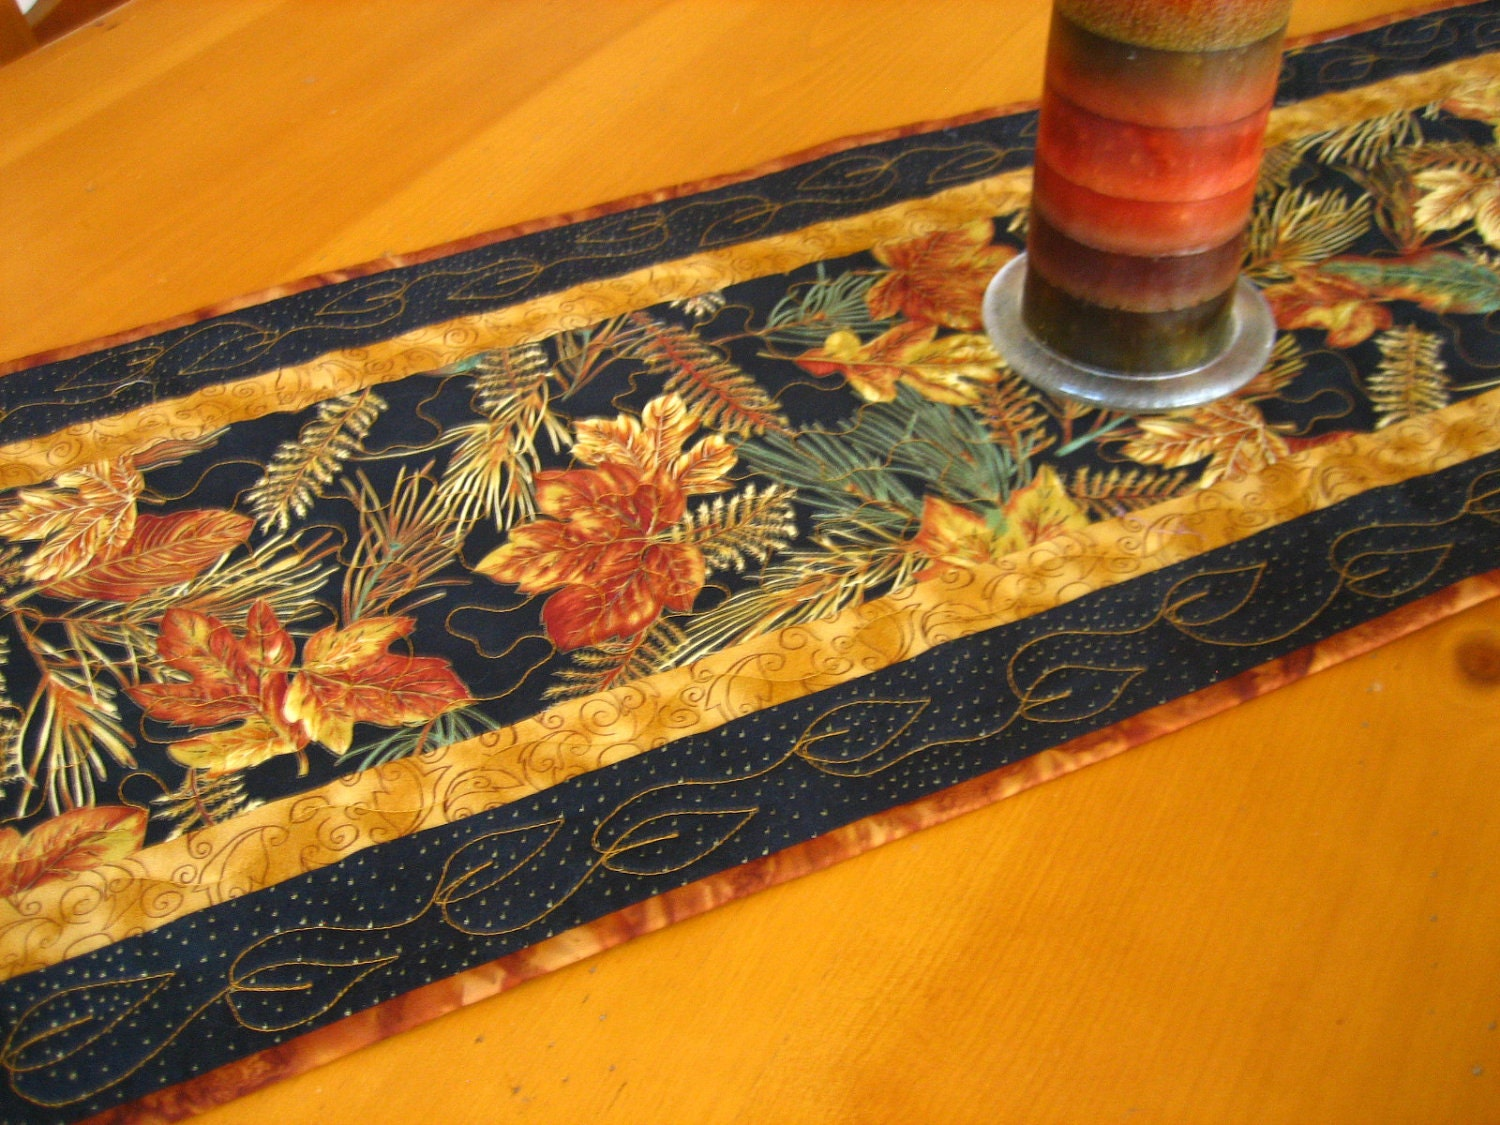 border Table on Etsy runner PatchworkMountain  Pine using Mountain by fabric table Runner RESERVED